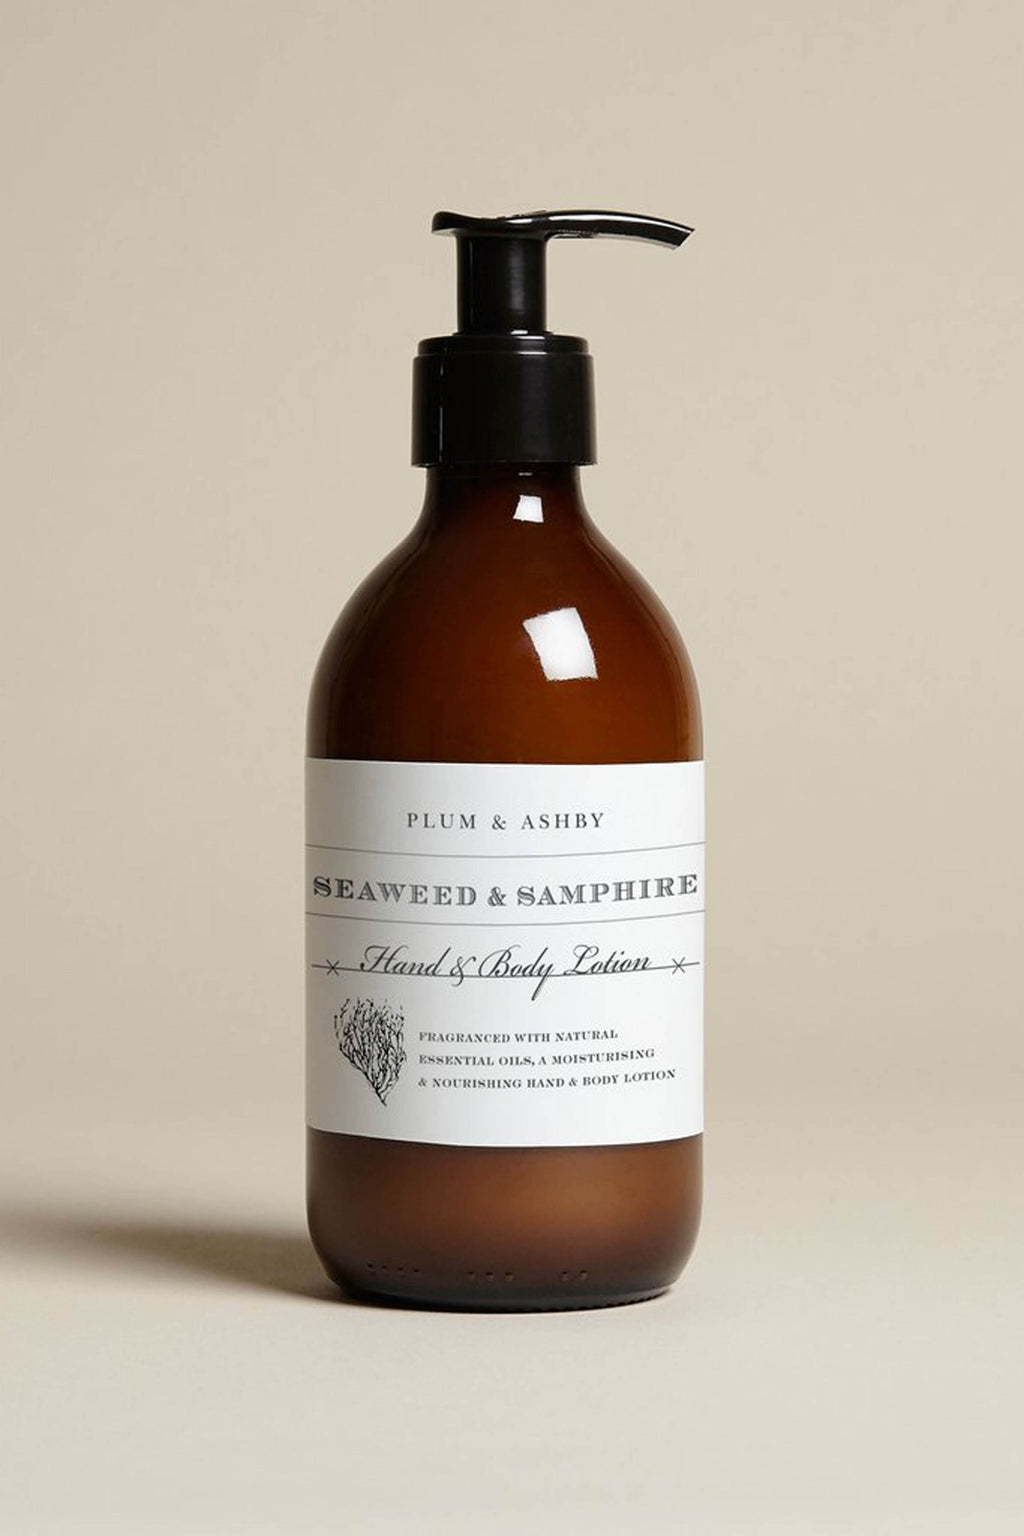 Plum & Ashby Seaweed & Samphire Hand & Body Lotion - The Mercantile London